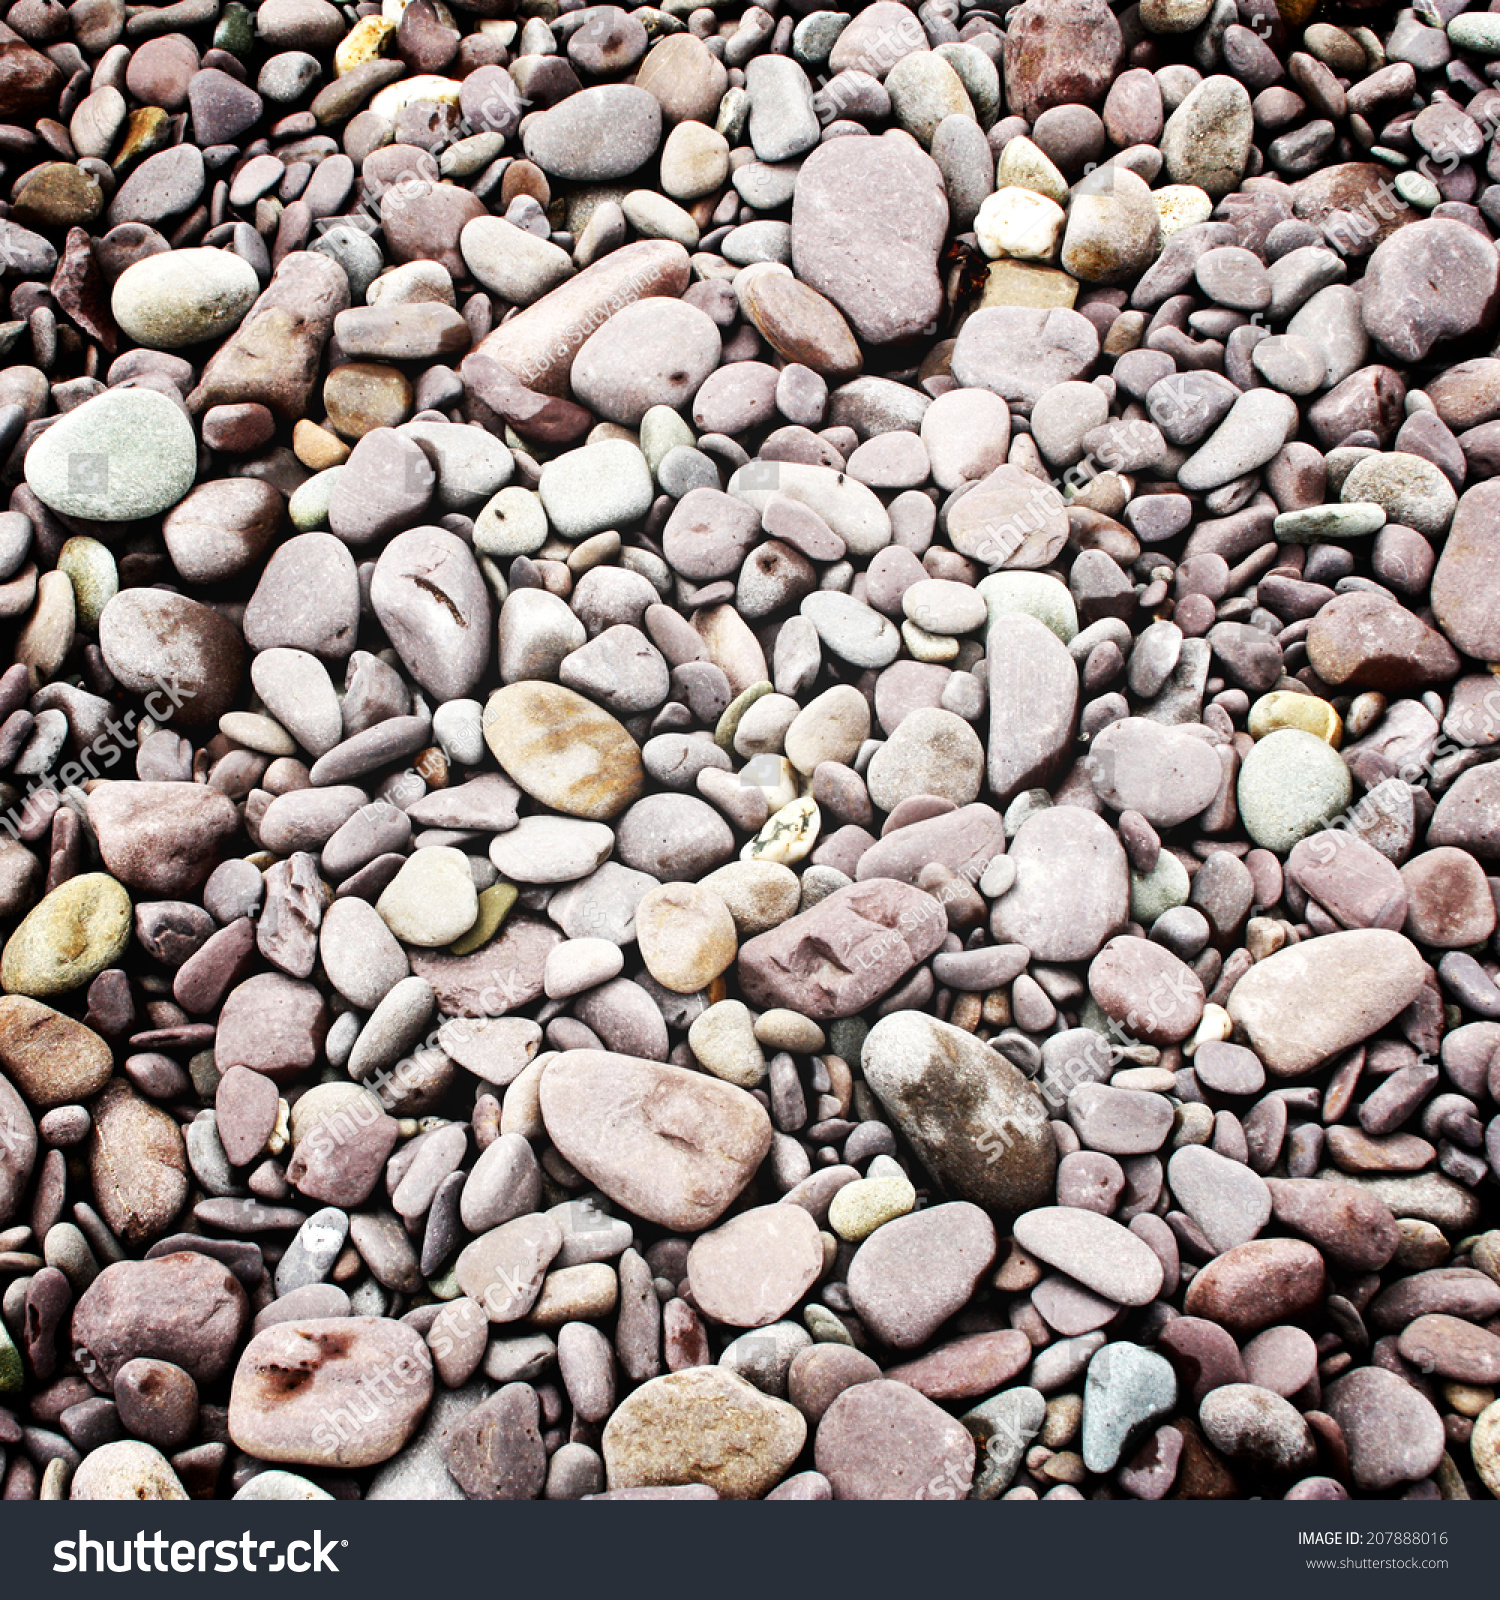 Smooth shaped white stones surface texture background stock photo - Pebbles Background Instagram Filter Small Stones On The Beach Retro Effect Photo